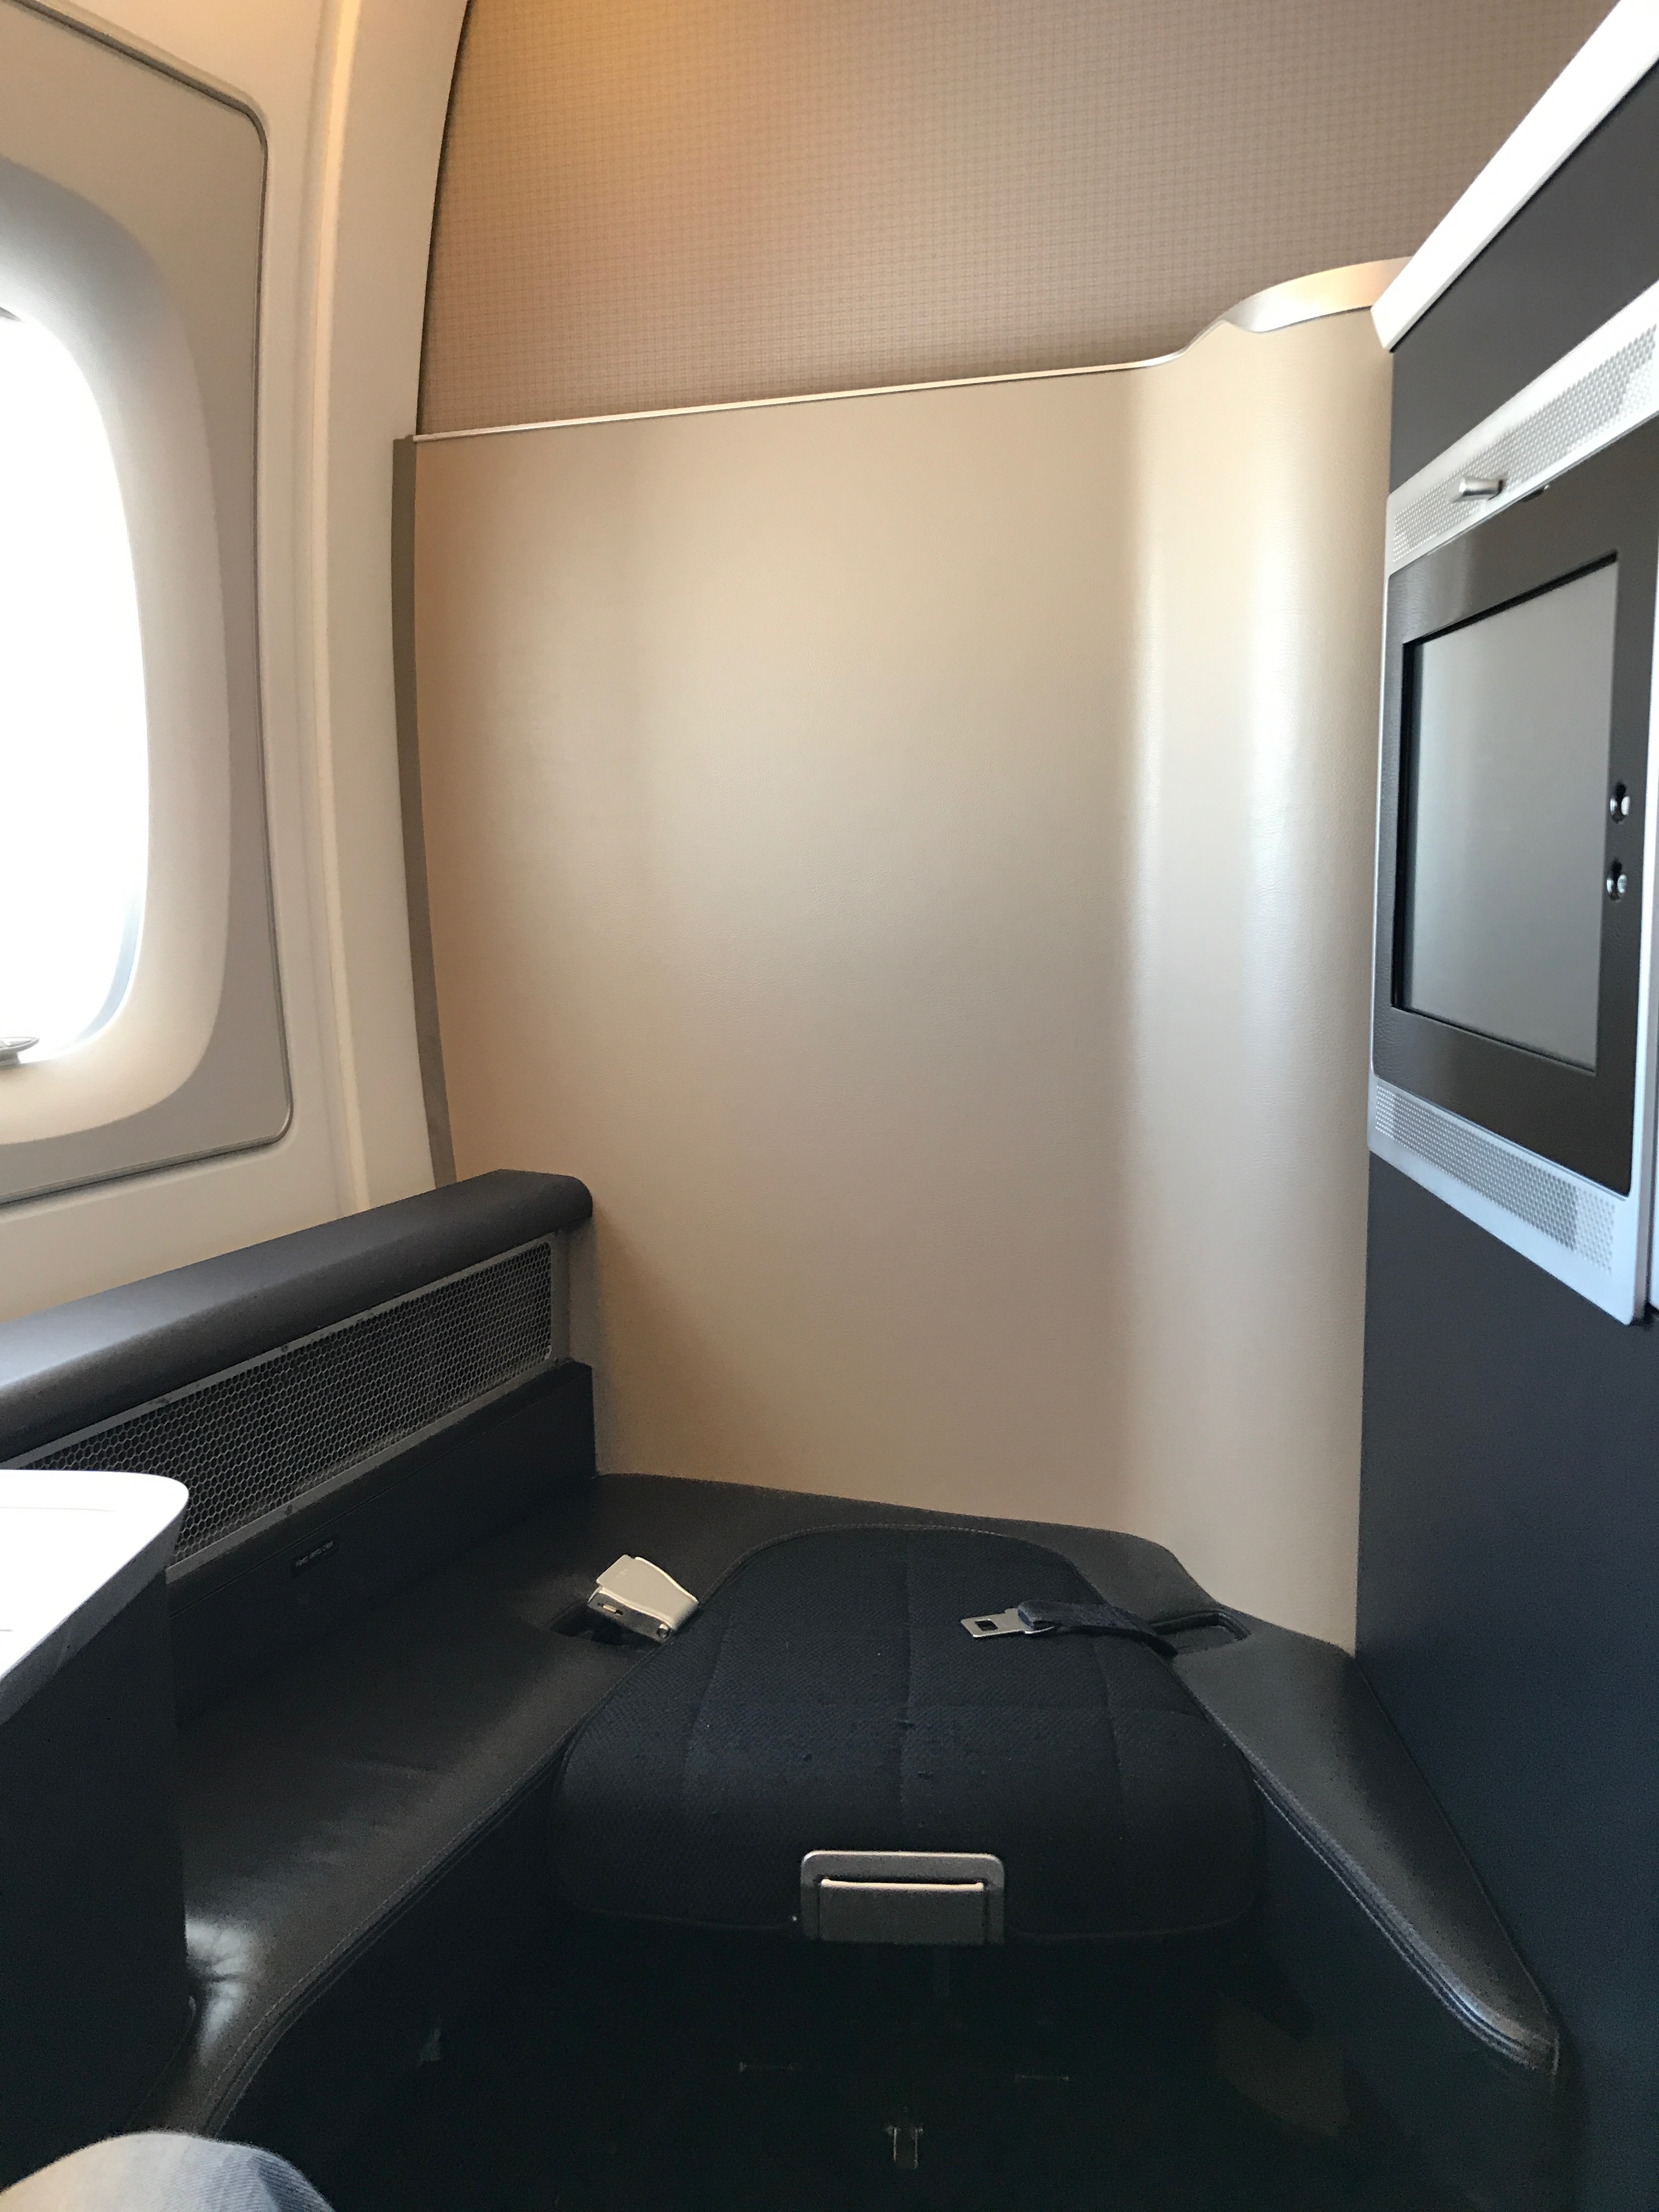 British Airways A380 first class seat looking forwards